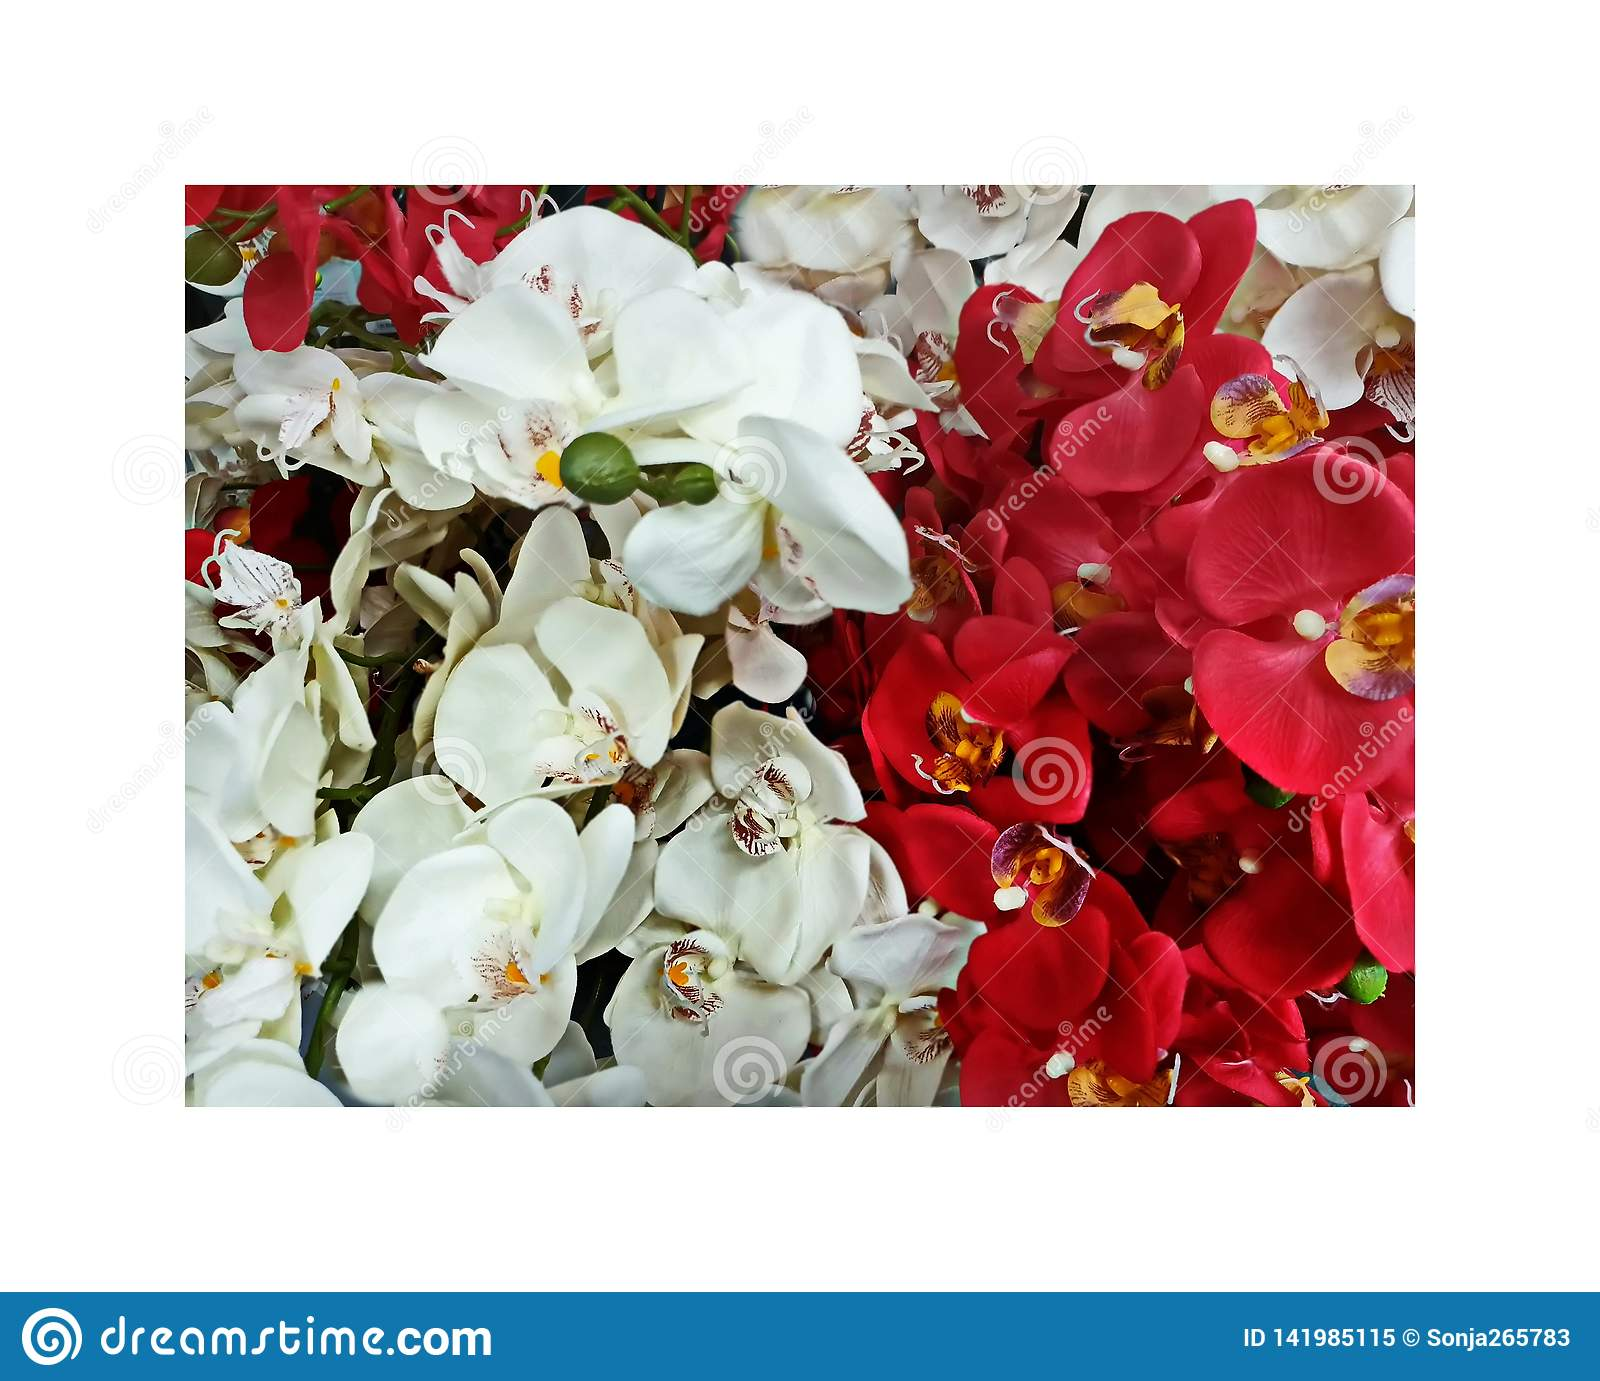 Orchids Red and White Flowers Background decoration design abstract art, Flowers decor for home ,greeting card ,women`s day